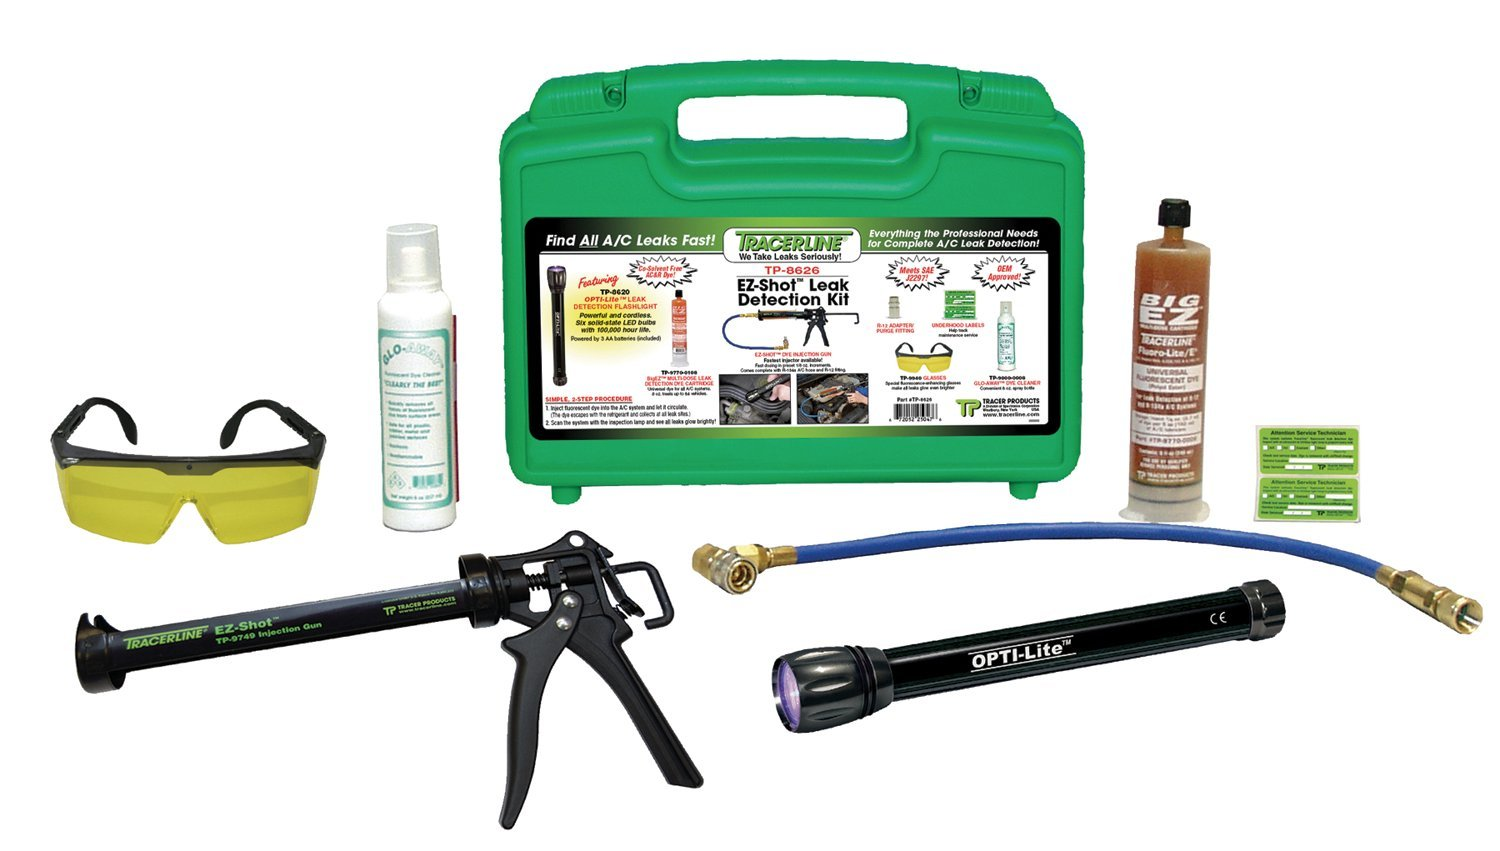 Spectronics Corp/Tracer TP8626 Ez-Shot Air Conditioner Leak Detection Kit with OPTI-Lite LED Flashlight 39472